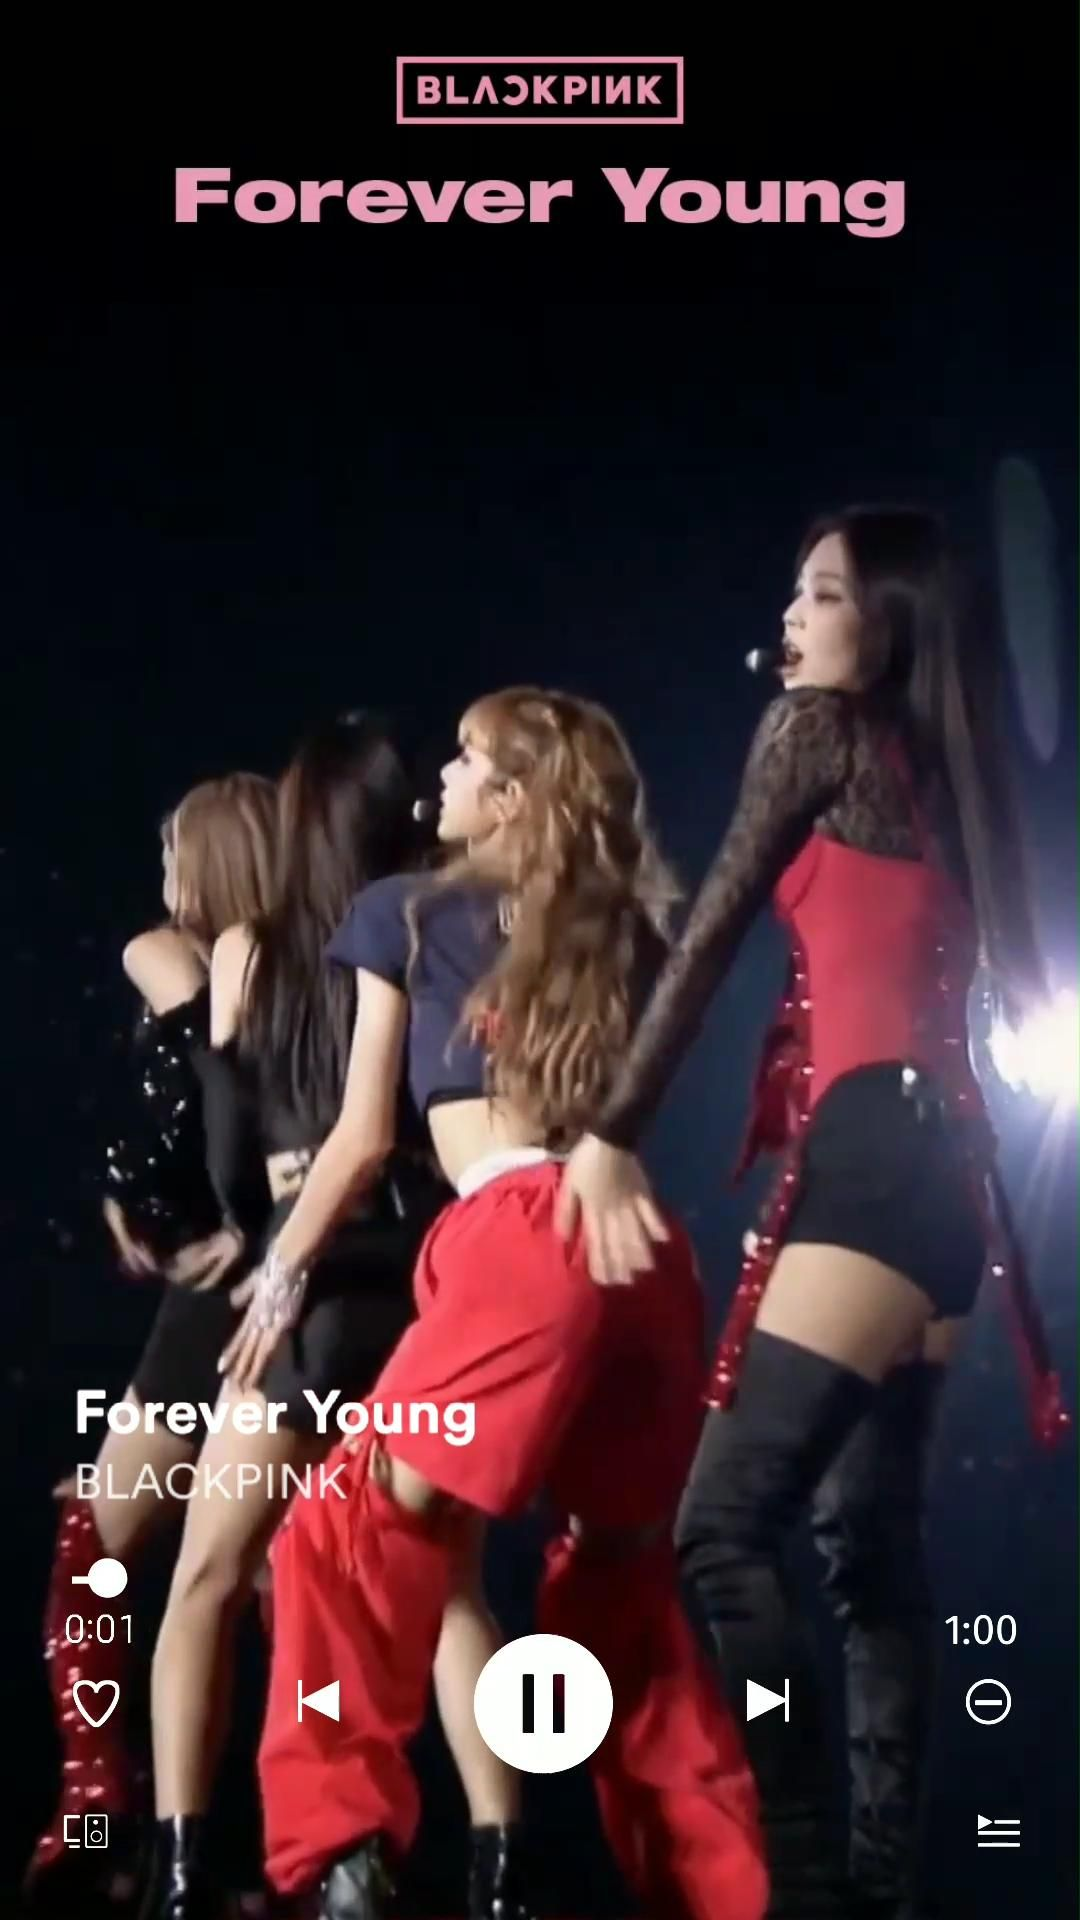 Blackpink - Forever Young (Chorus Part #2)